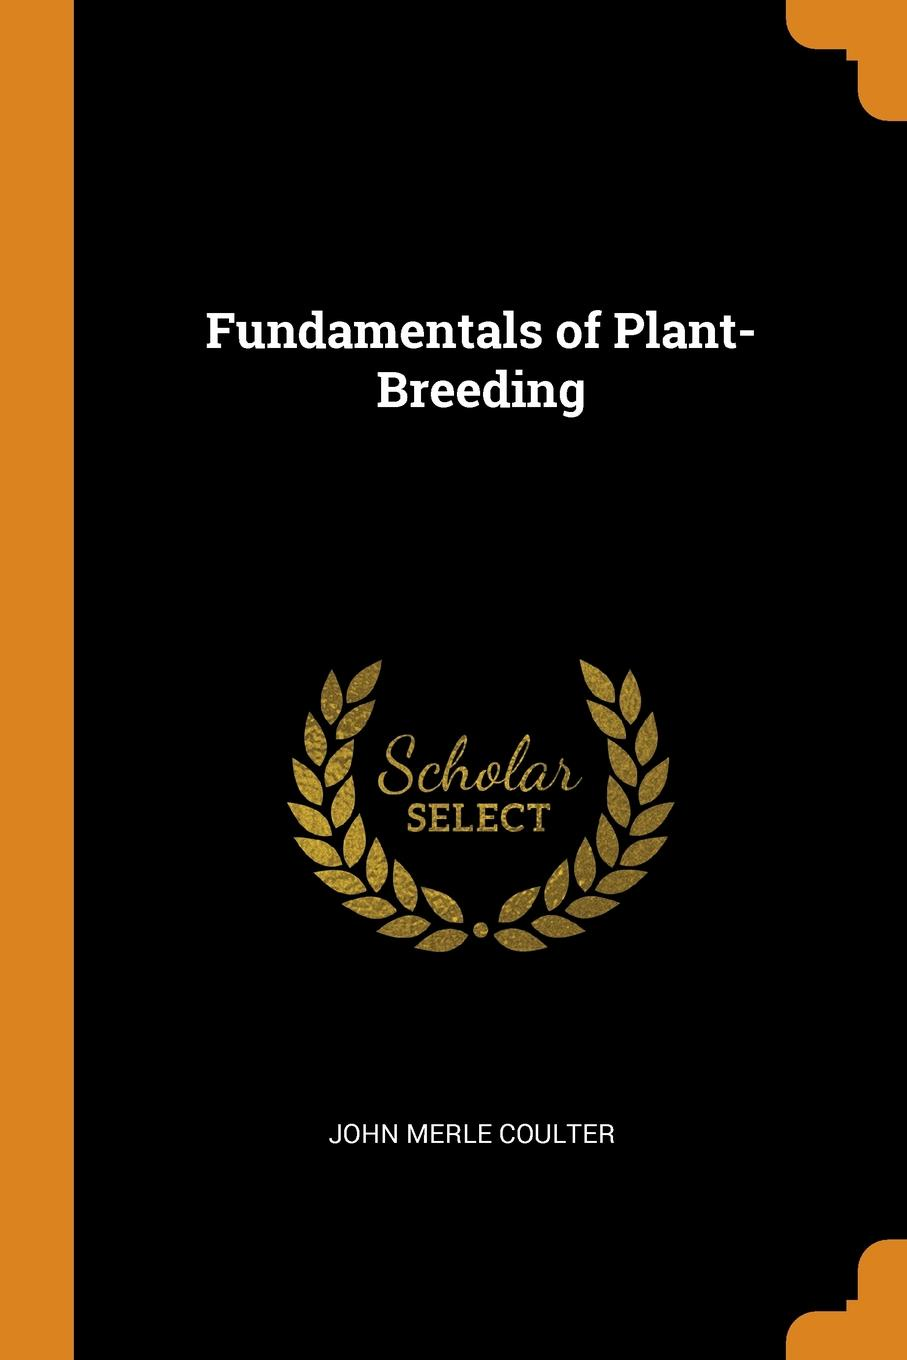 John Merle Coulter. Fundamentals of Plant-Breeding